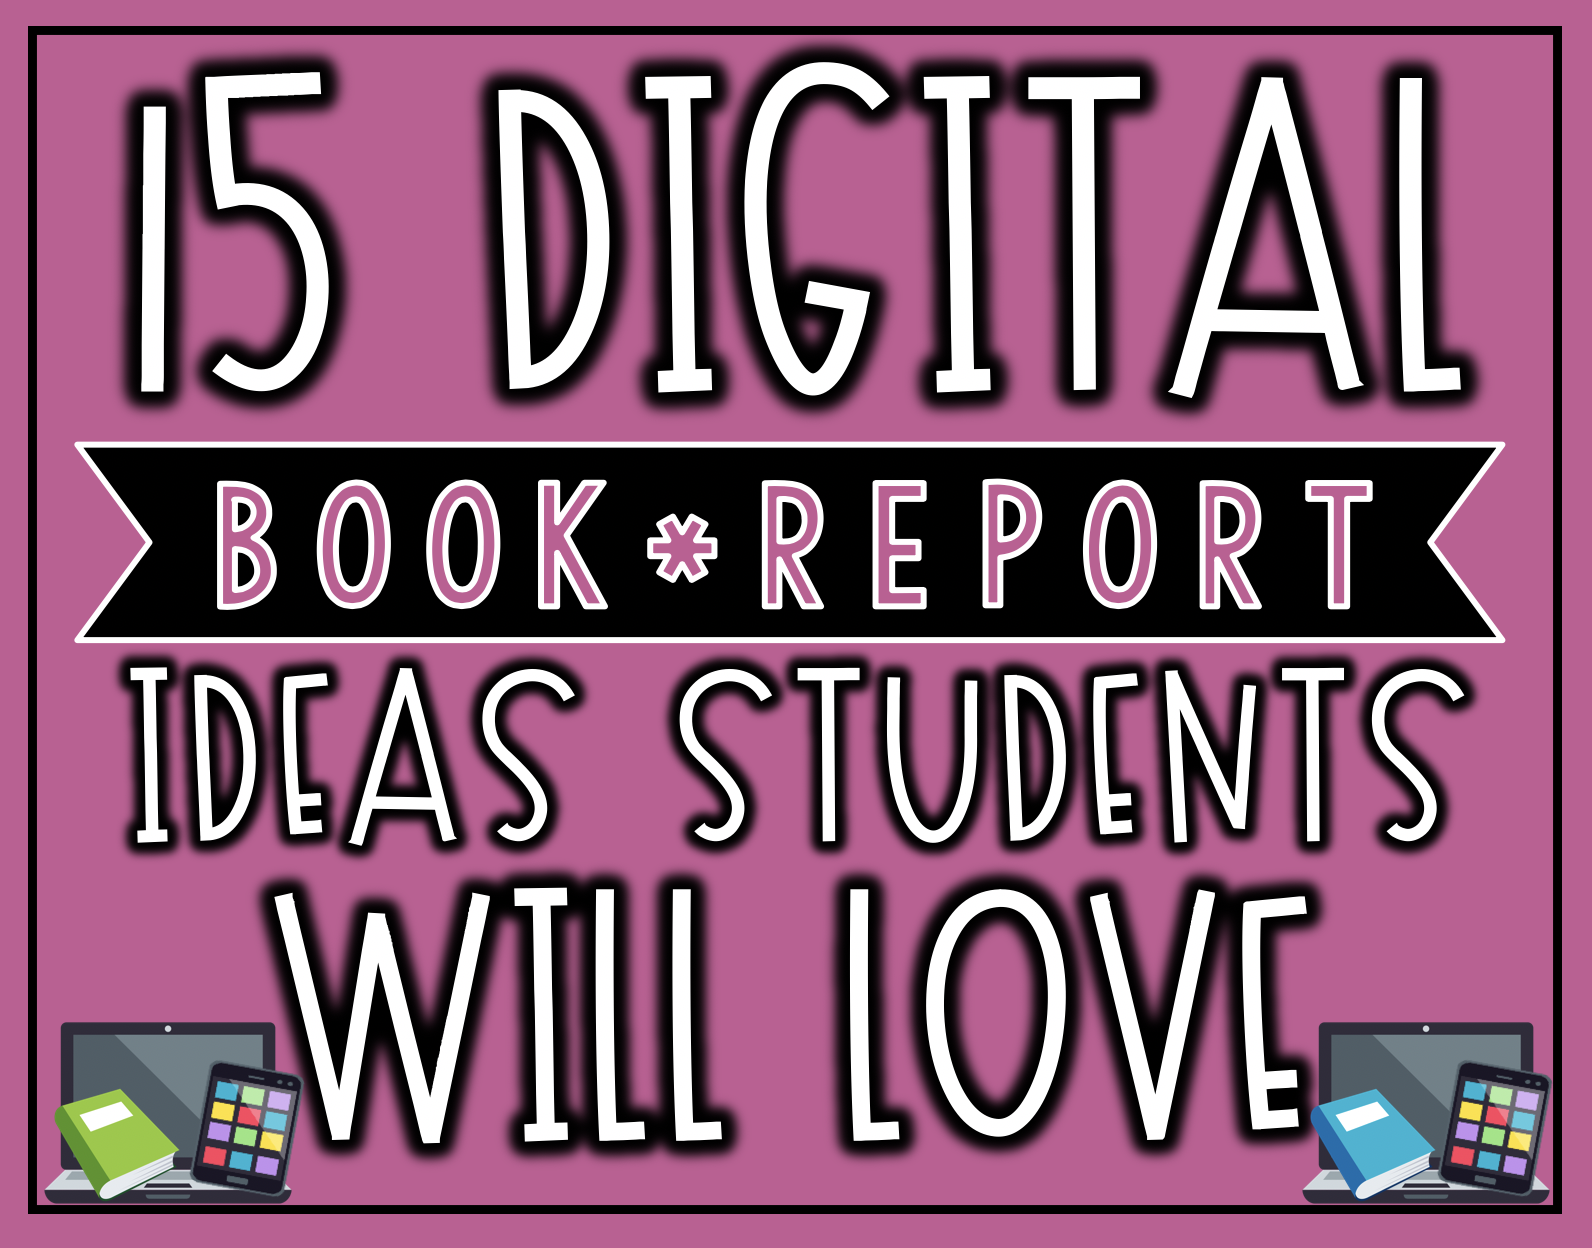 hight resolution of 15 Digital Book Report Ideas Your Students Will LOVE   The Techie Teacher®